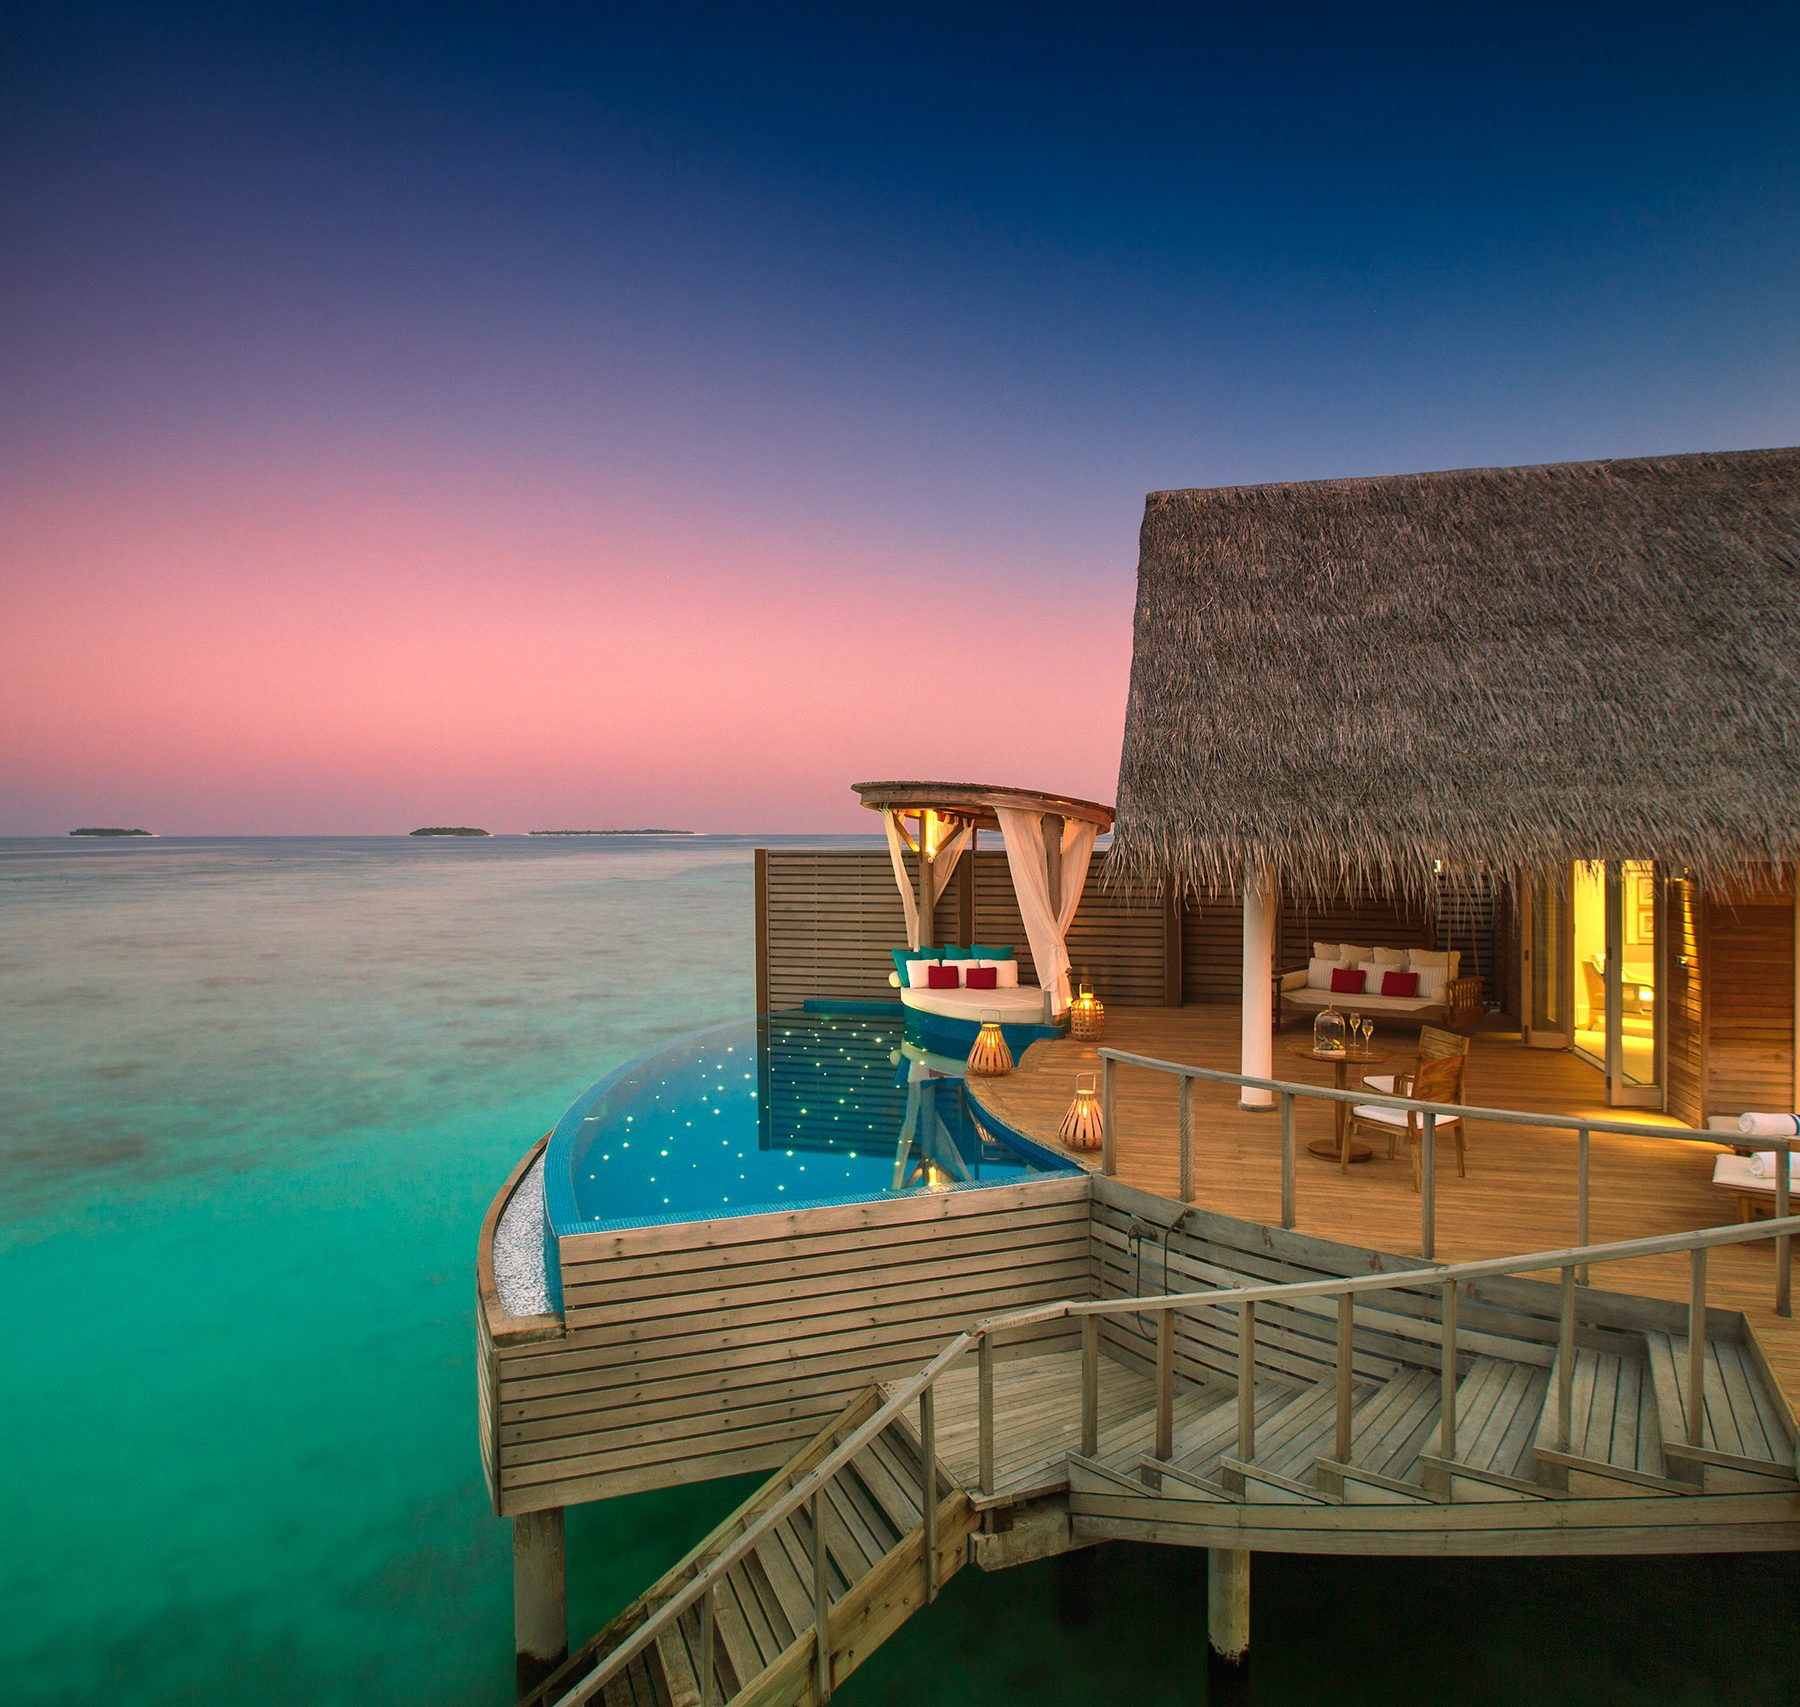 View across the Indian Ocean and the Water Pool Villa at Milaidhoo Island in the Maldives at dusk